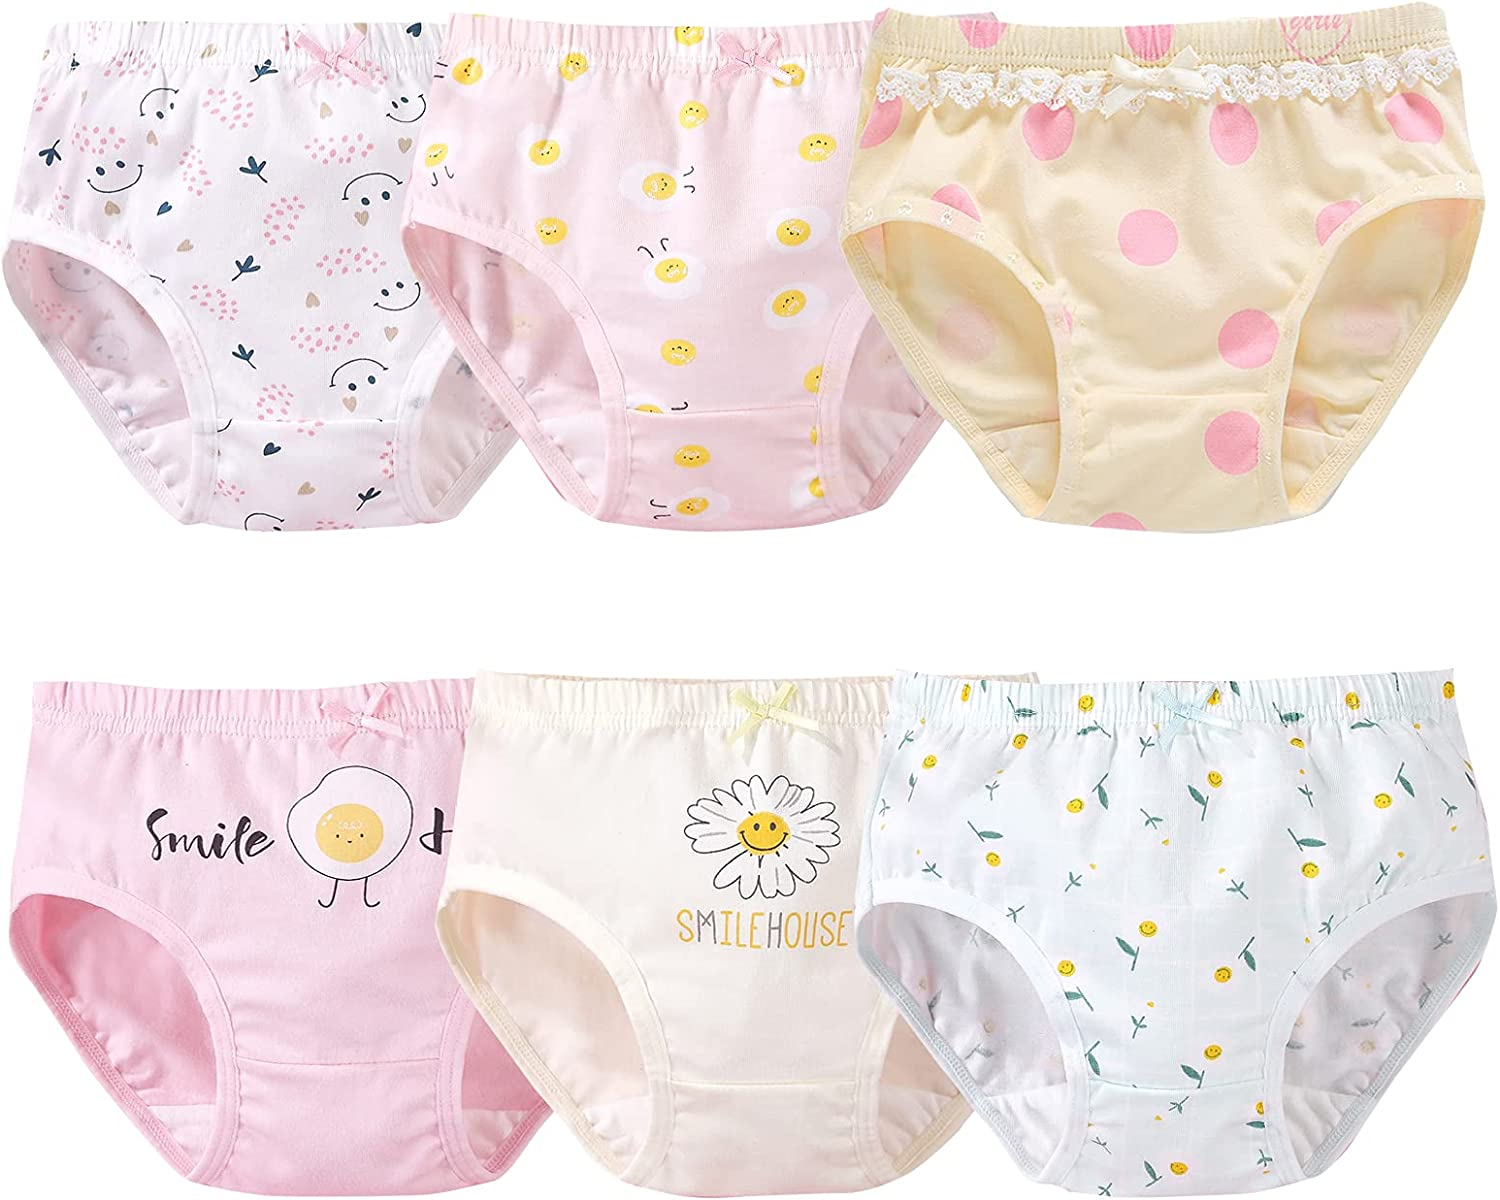 Clearance SALE! Limited time! Orinery Cotton Soft Girls Underwear Bombing free shipping Toddler Breathable Assorted